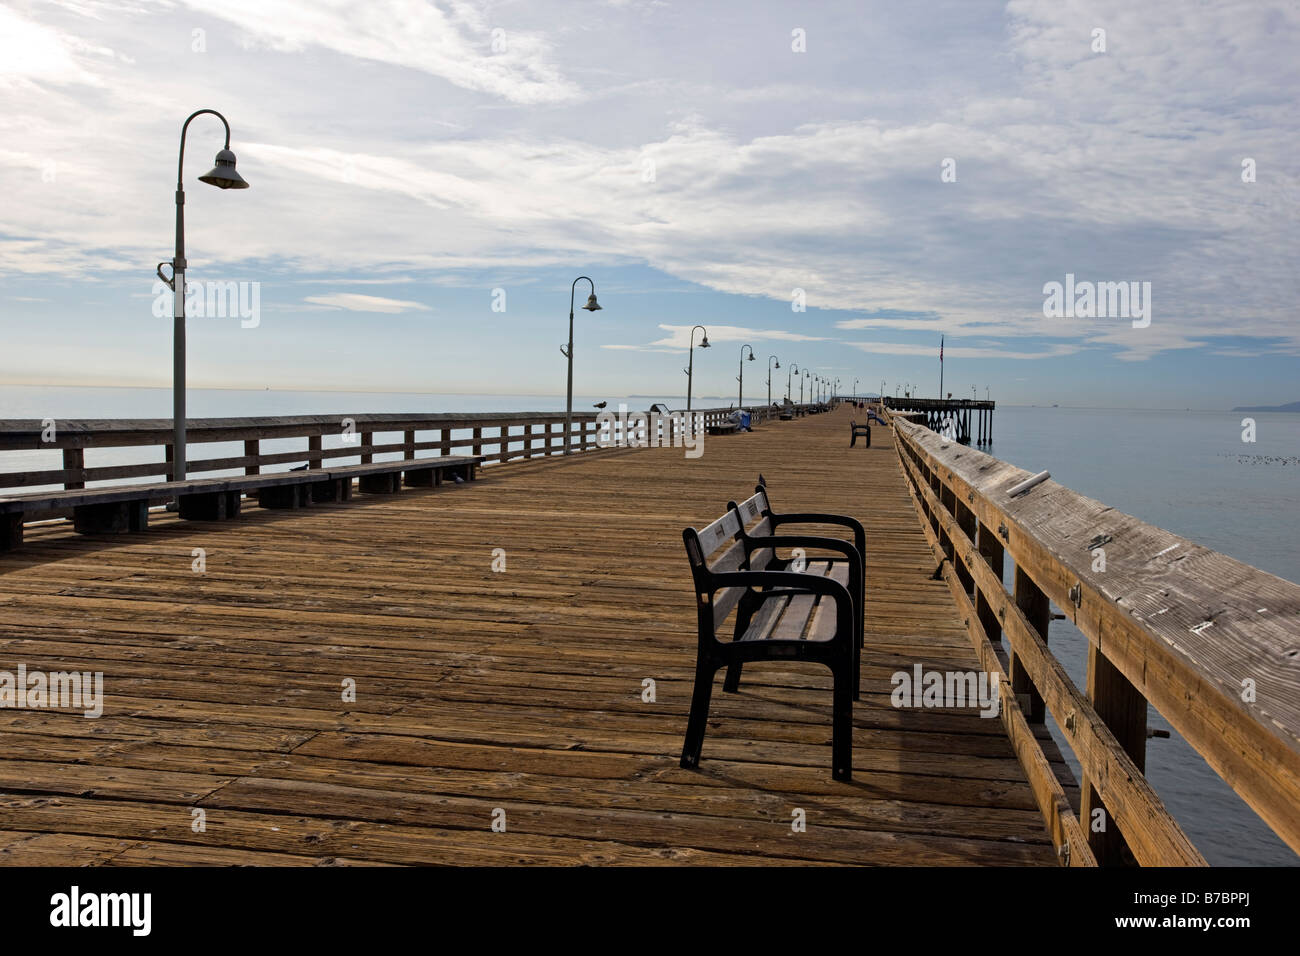 The Ventura California Pier,1958' longest wooden pier in California. Built in 1872 and reconstructed several - Stock Image